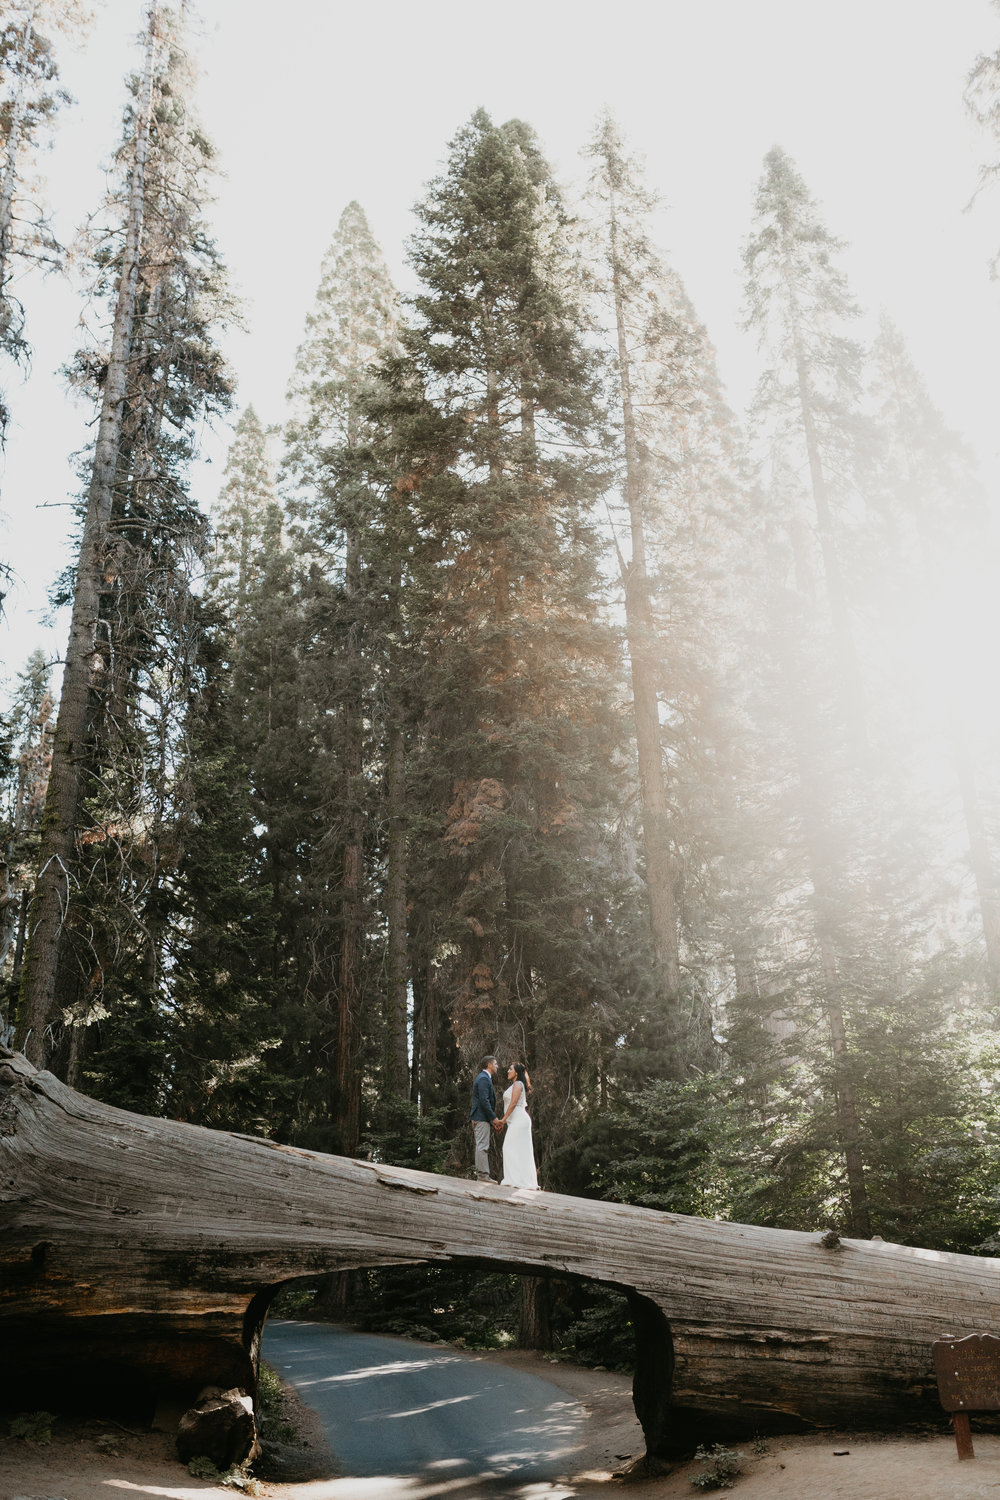 nicole-daacke-photography-sequoia-national-park-adventurous-elopement-sequoia-elopement-photographer-redwoods-california-intimate-wedding-photographer-20.jpg